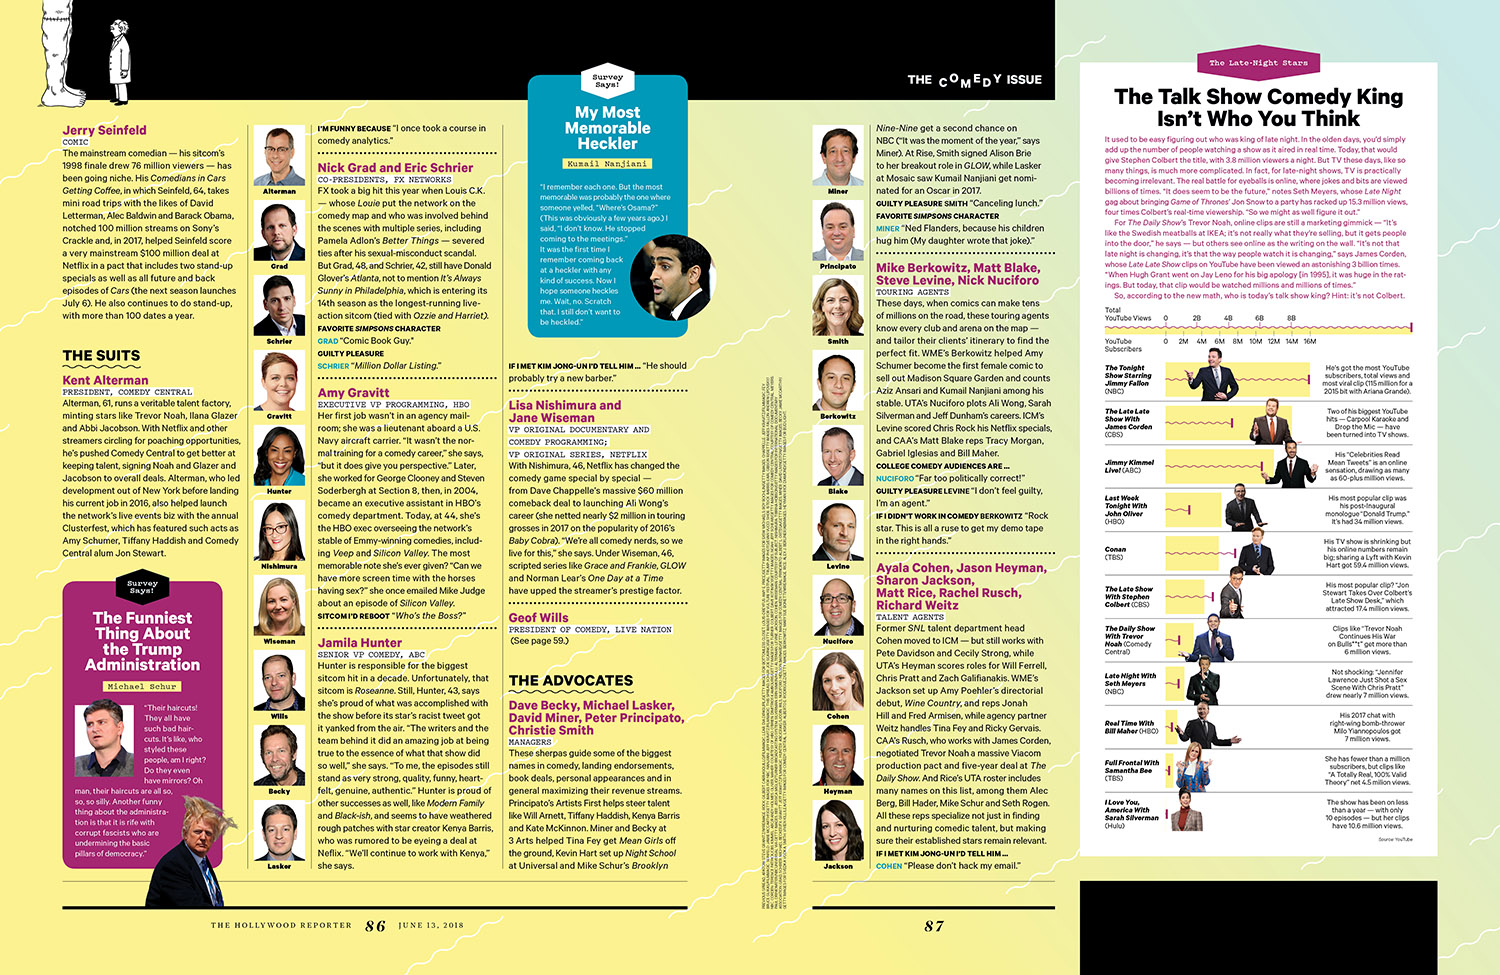 The 40(ish) Most Powerful People in Comedy / The Hollywood Reporter / 6.13.18 / kelsey stefanson / art direction + graphic design / yeskelsey.com